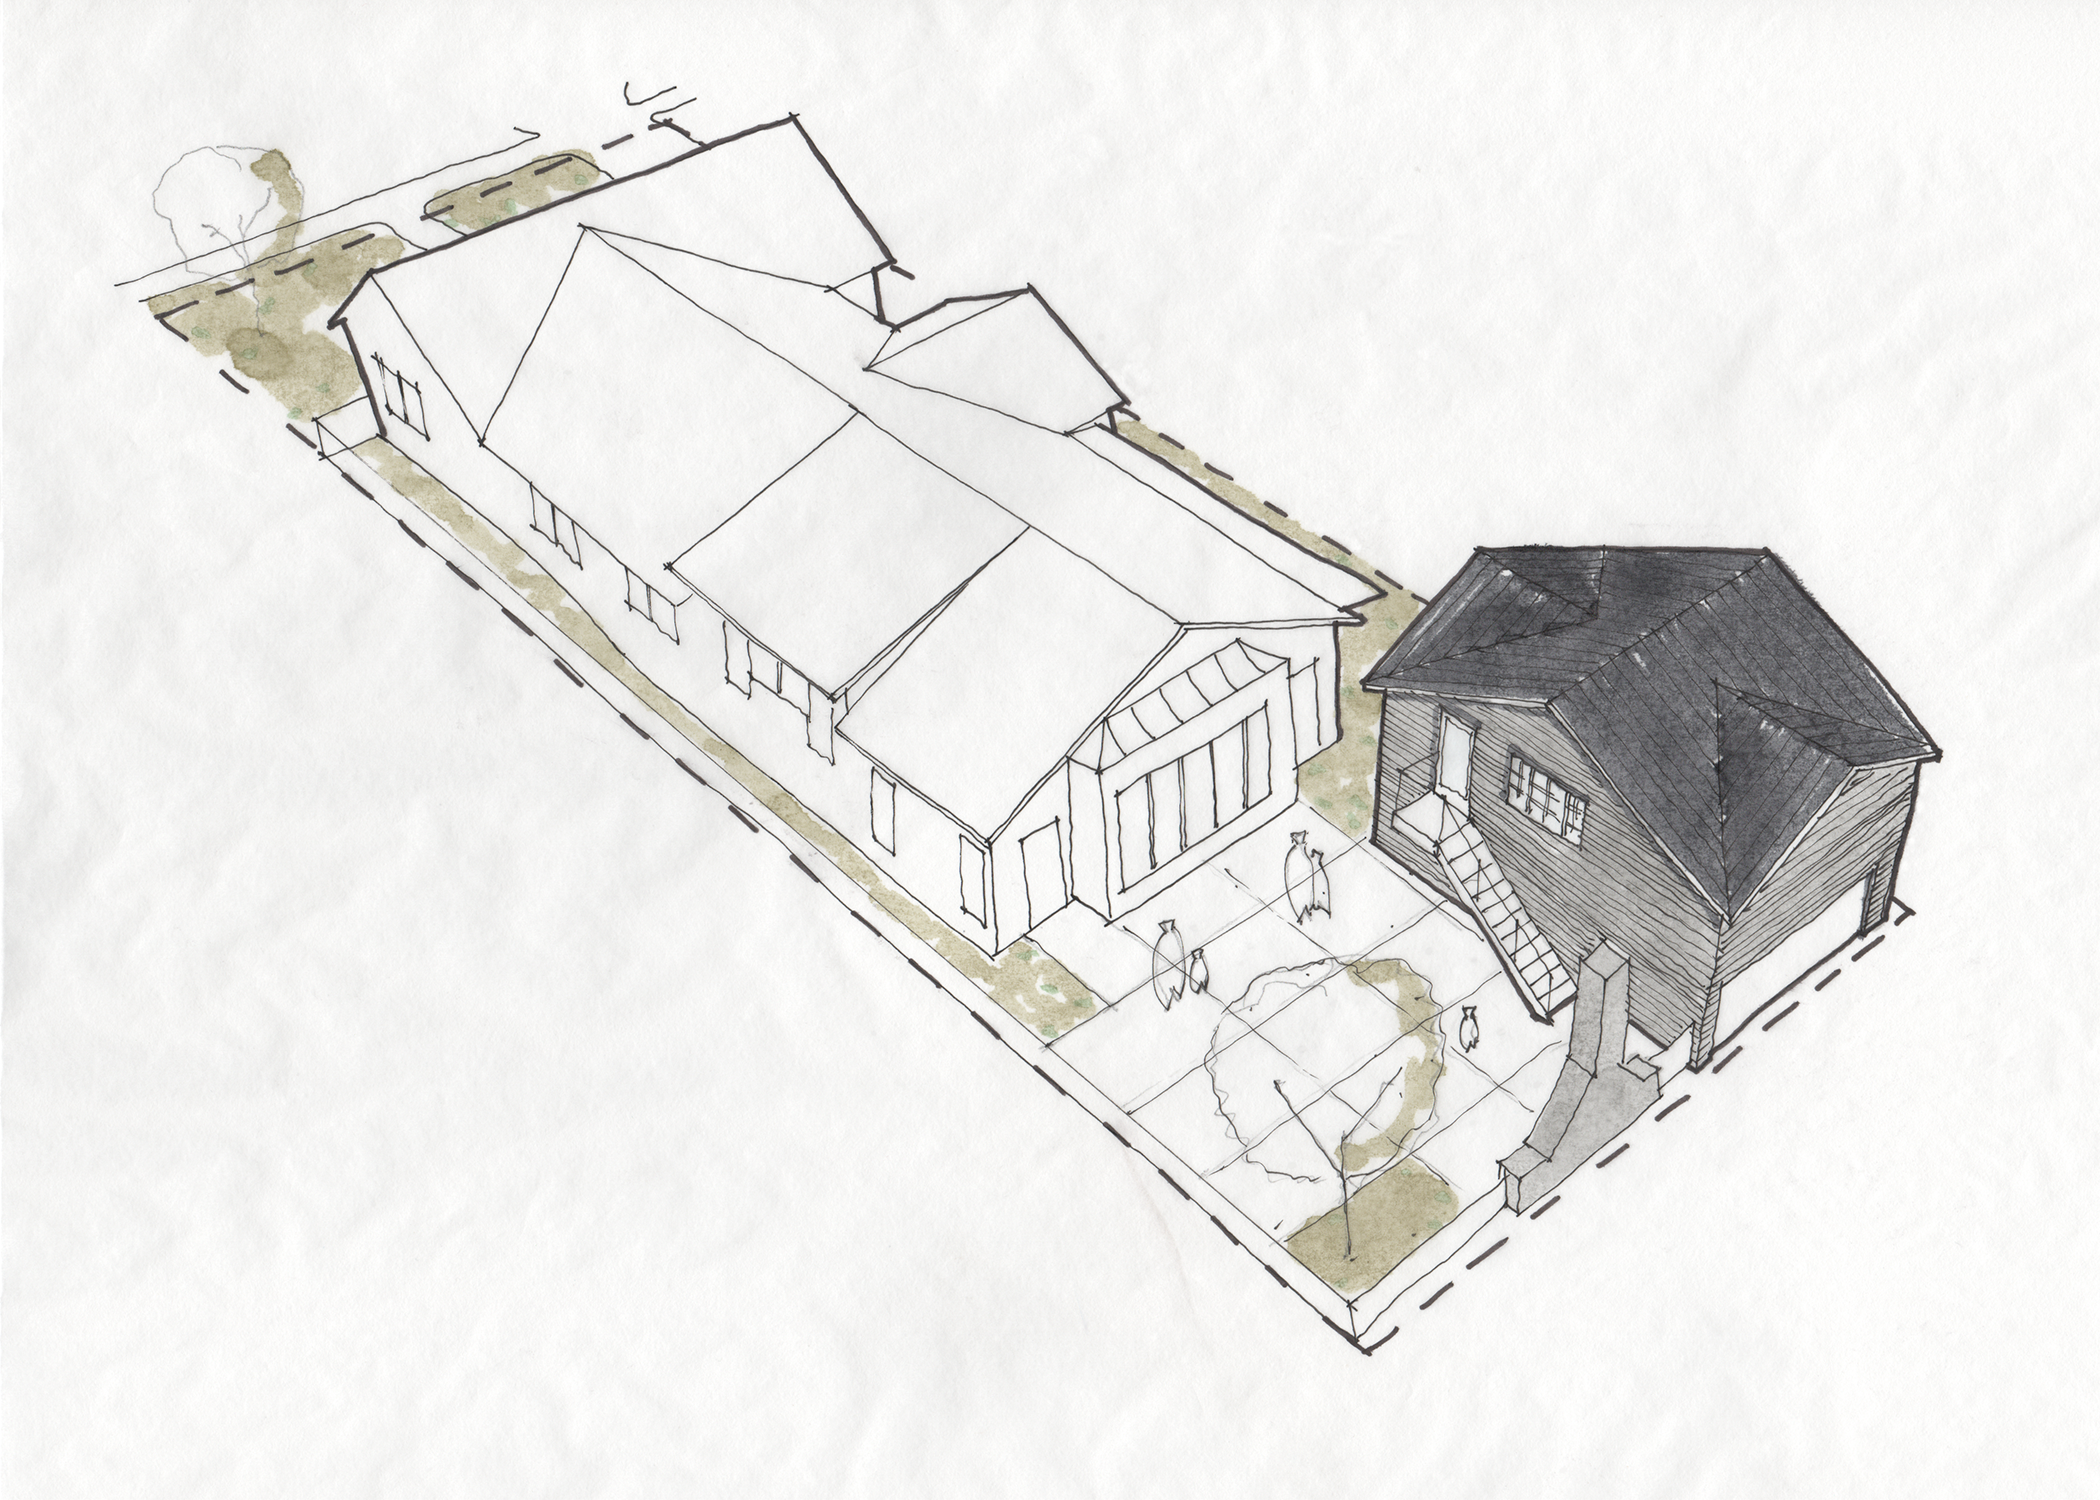 Traditional ADU design for a 2 car garage with studio apartment above and shared courtyard.